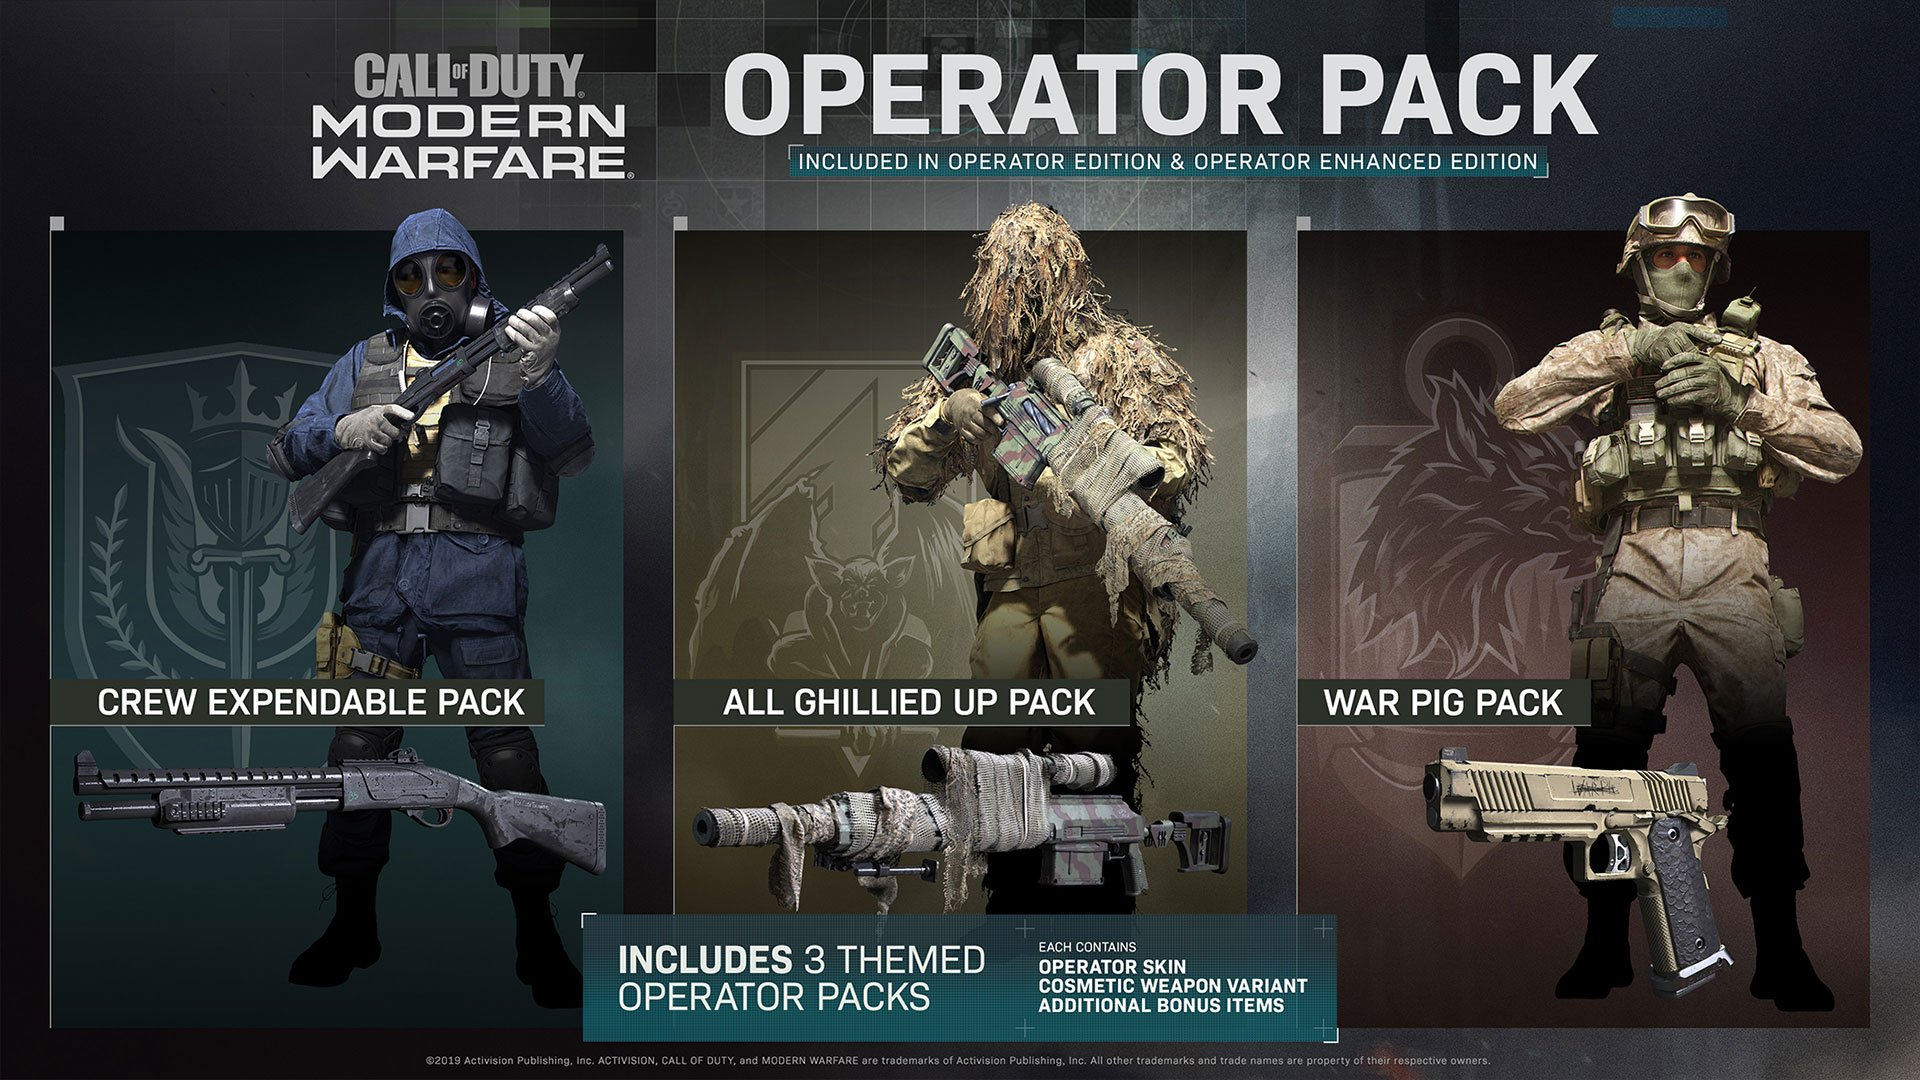 Call of Duty Modern Warfare 2019 Special Operator Edition Precision DLC pack